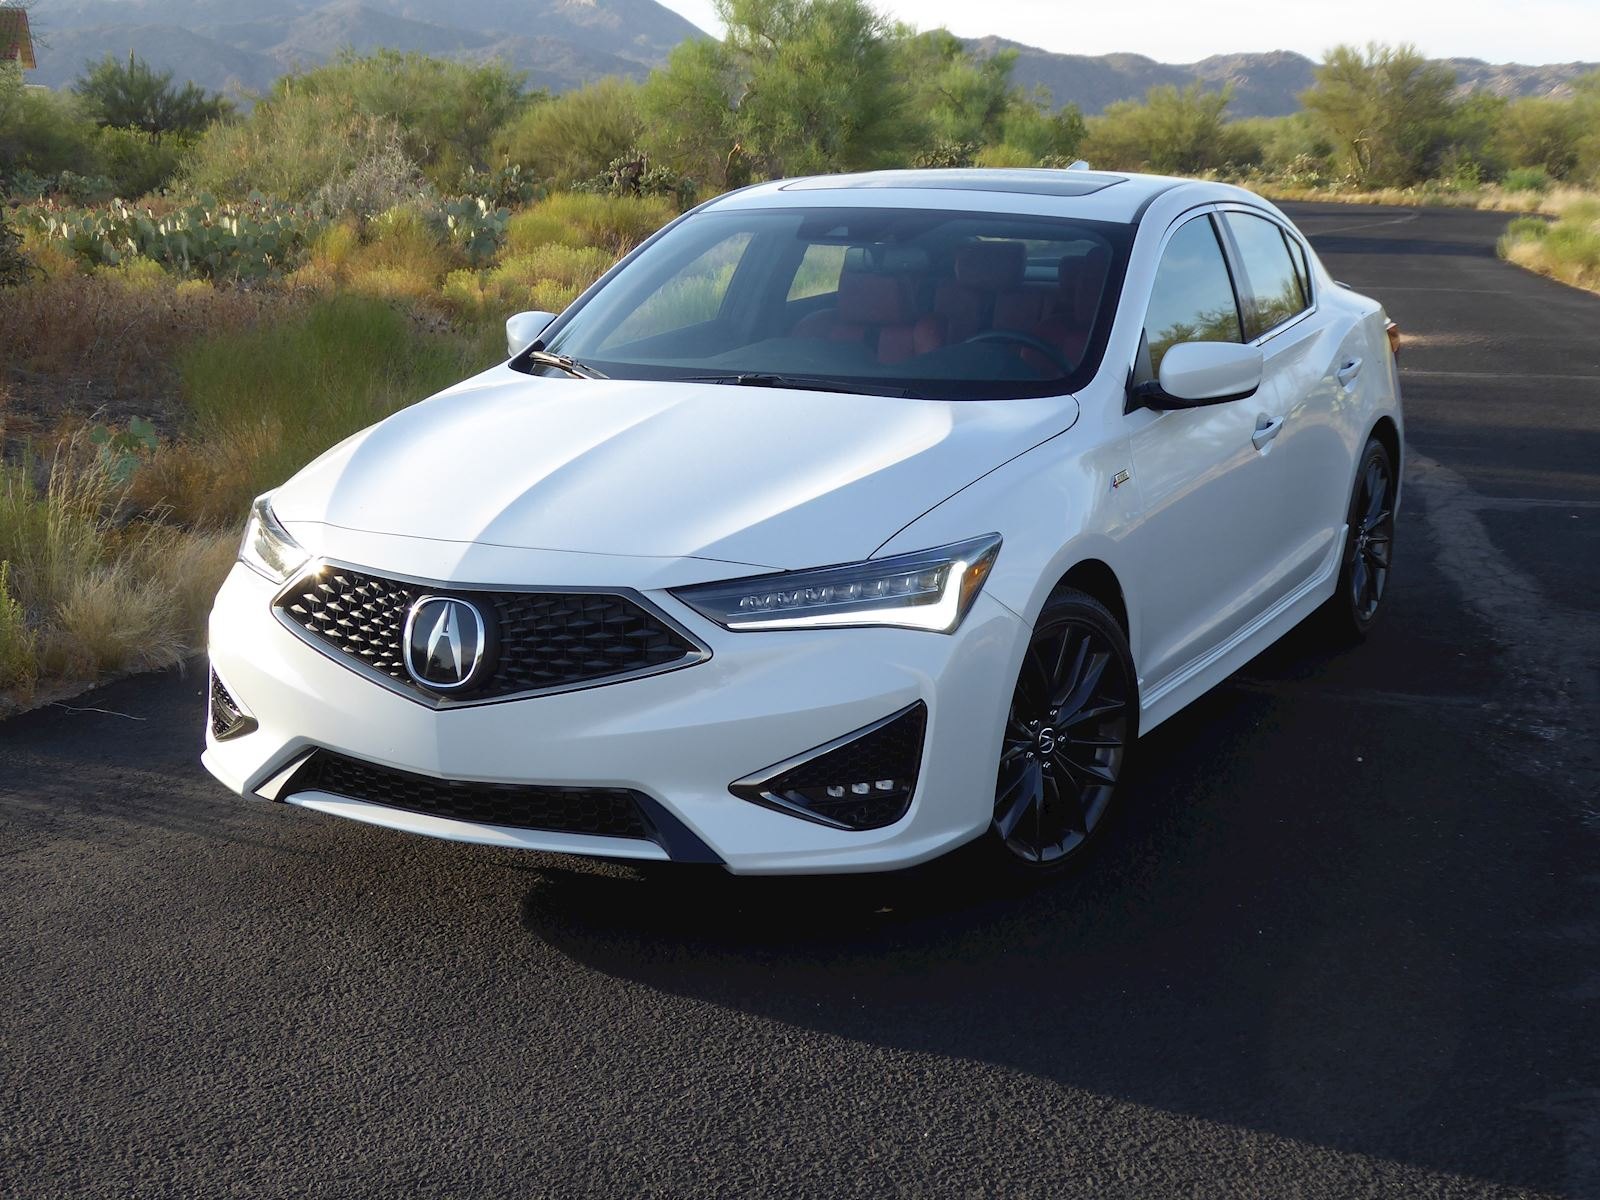 2020 Acura ILX Front Side Angle